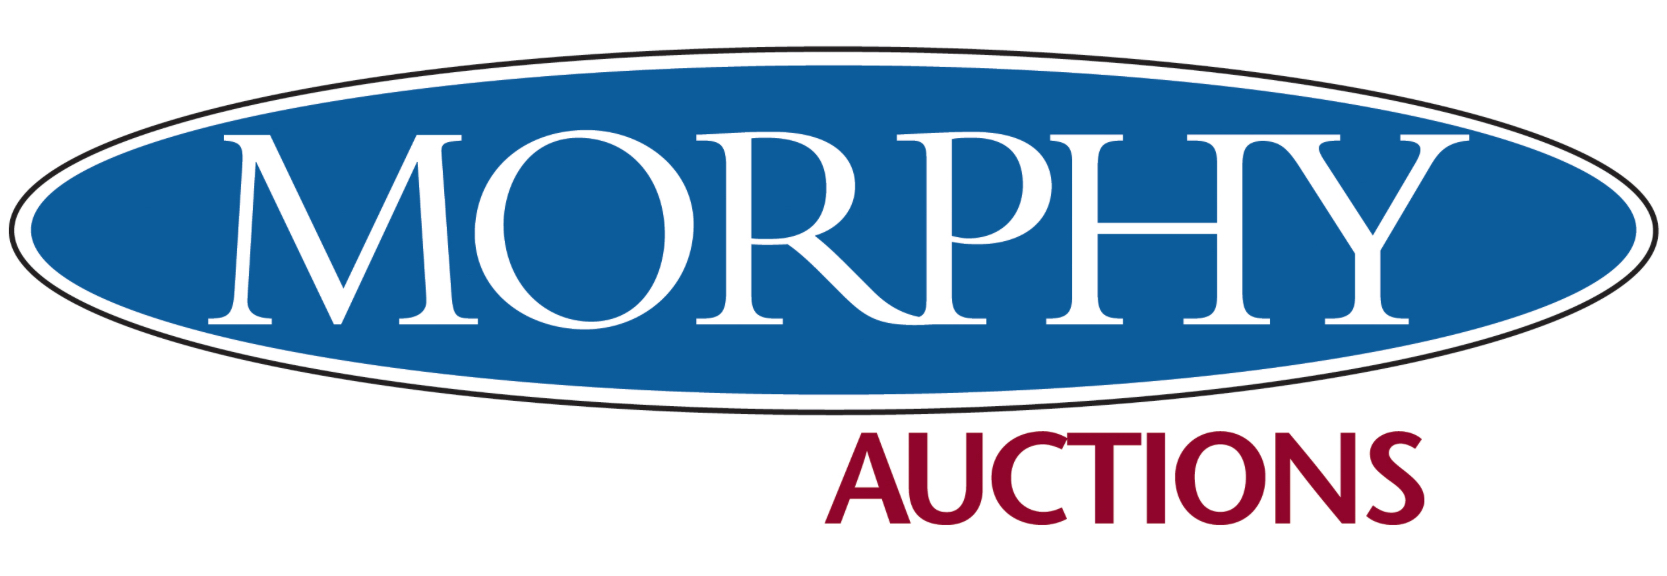 Morphy Auctions Adds Seasoned Talent To Its Expanding Fishing And Tackle Division Morphy fine art antiques jewelry glass auction catalog hc november 2013. morphy auctions adds seasoned talent to its expanding fishing and tackle division